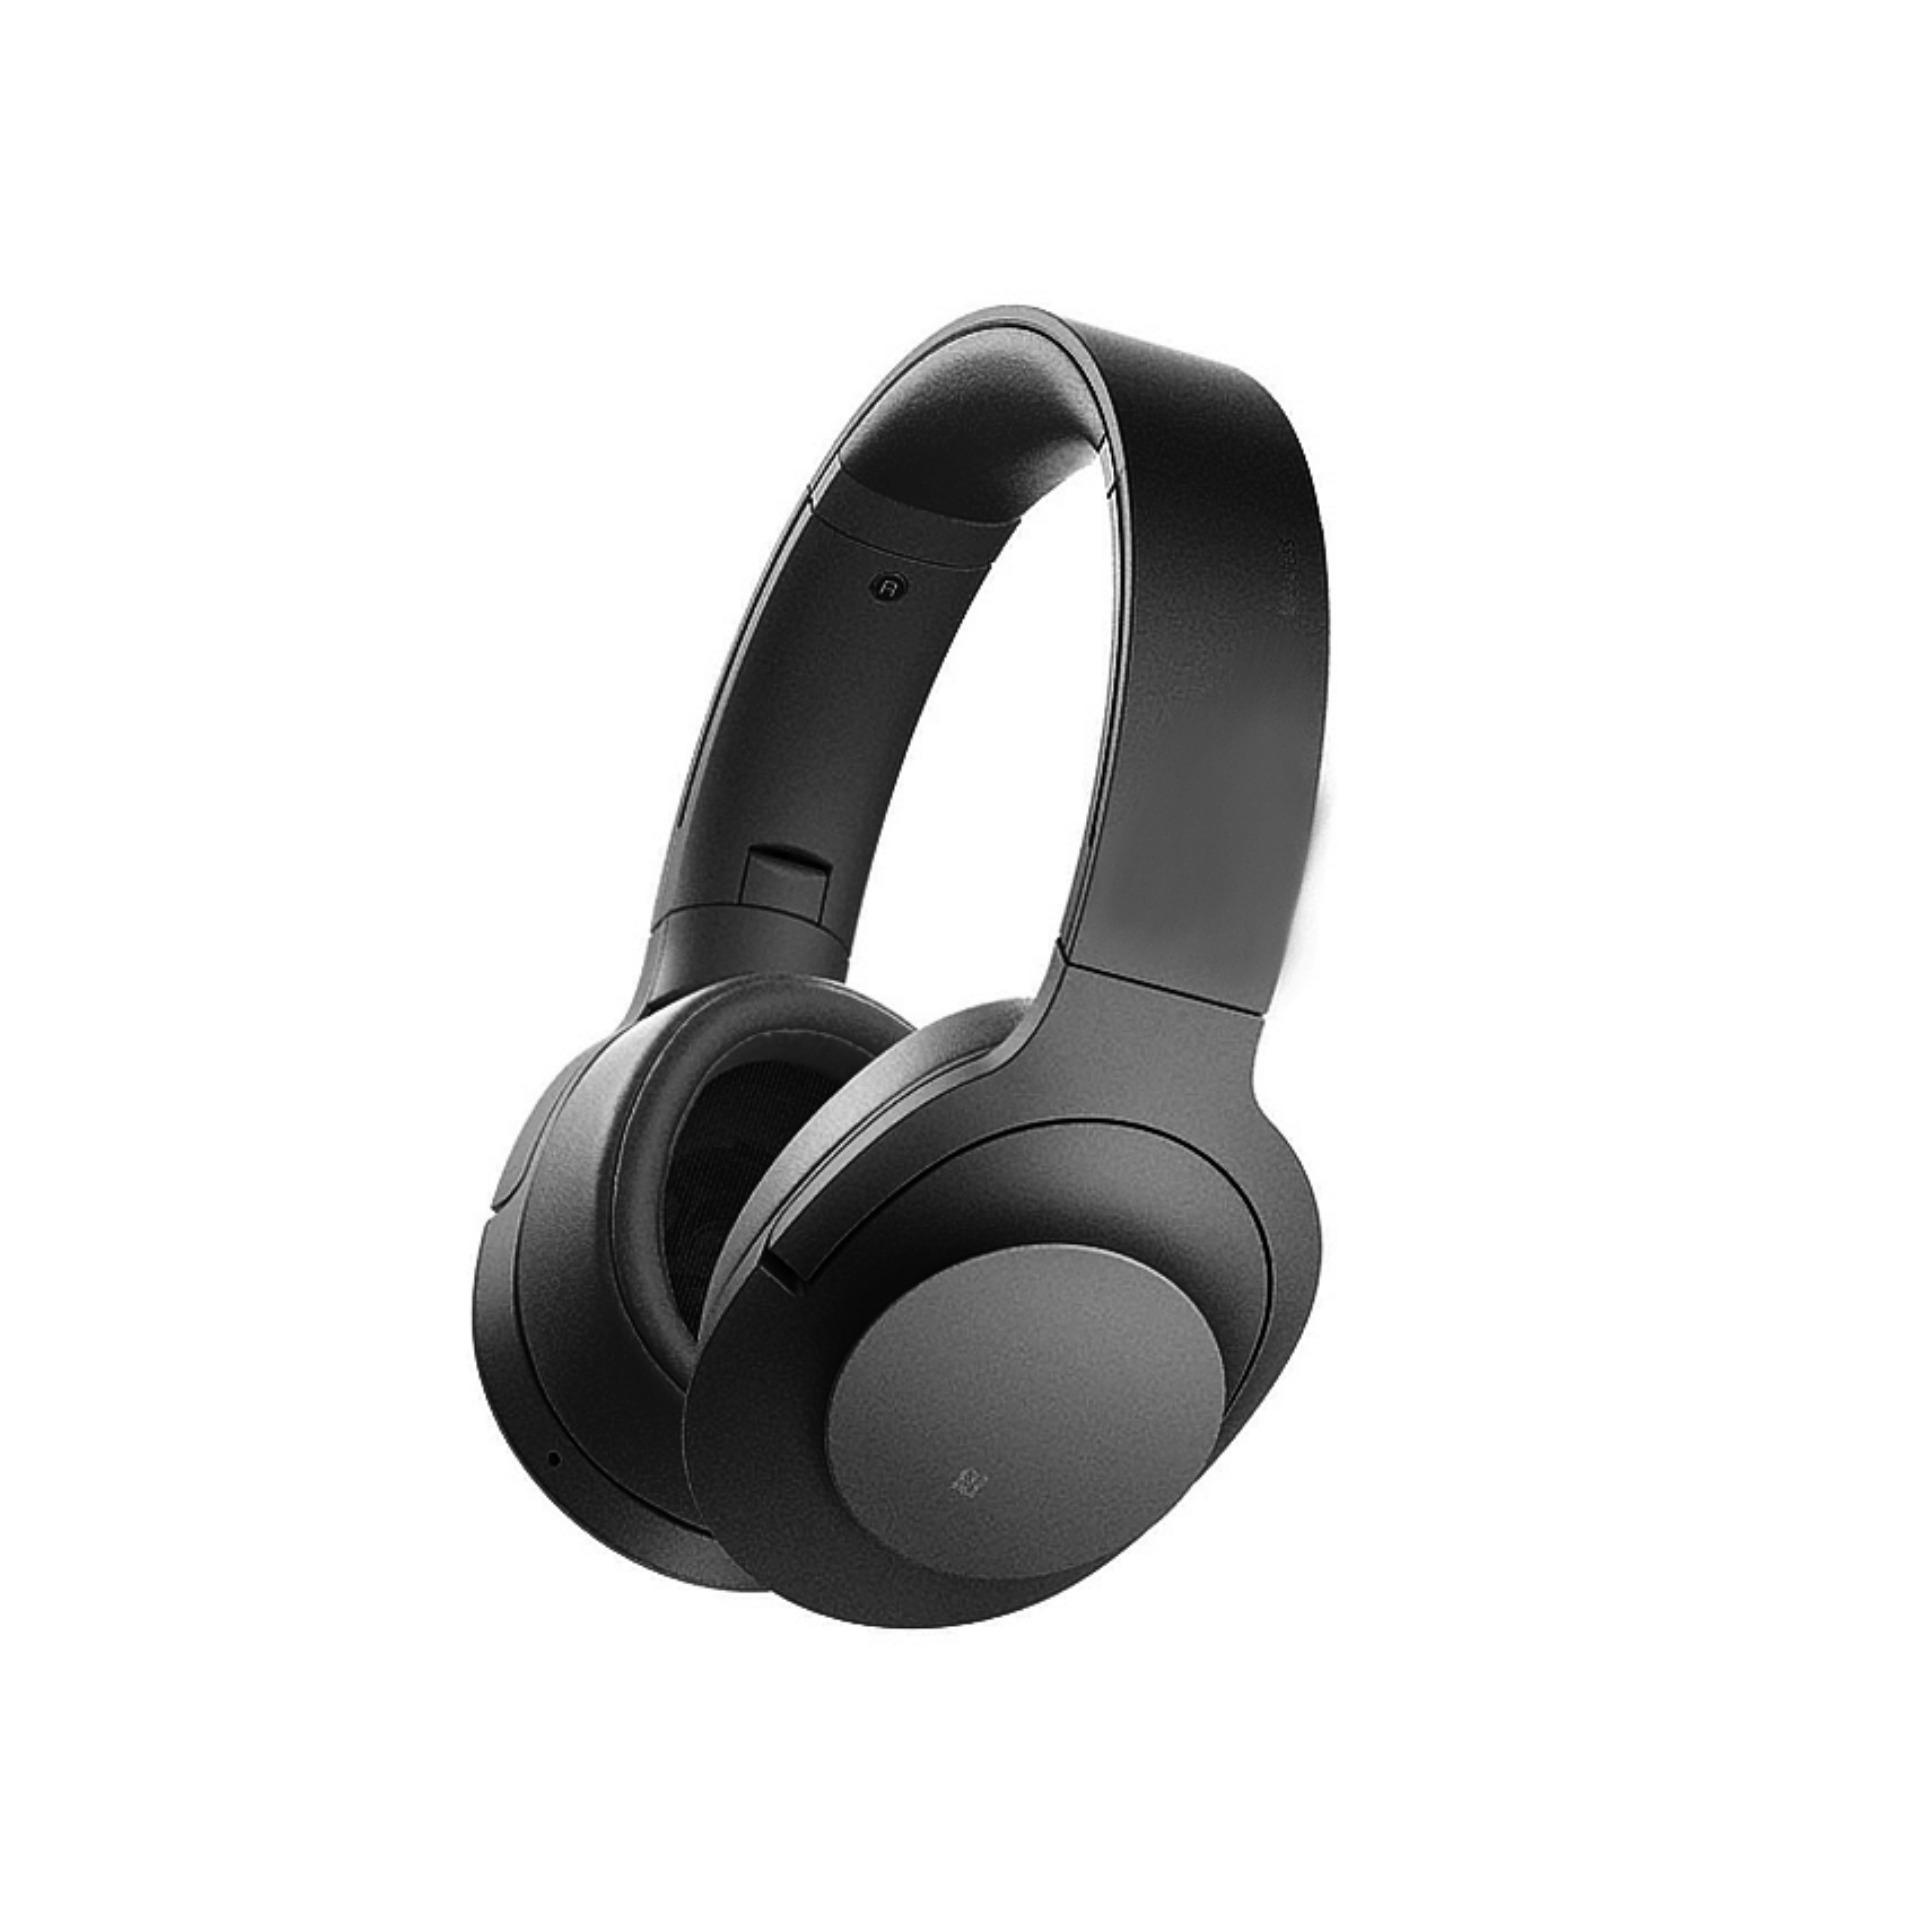 Unbranded Philippines Over The Ear Headphone For Sale Bluetooth Earphone Bh 320 Stereo Subwoofer Wireless Headset Black